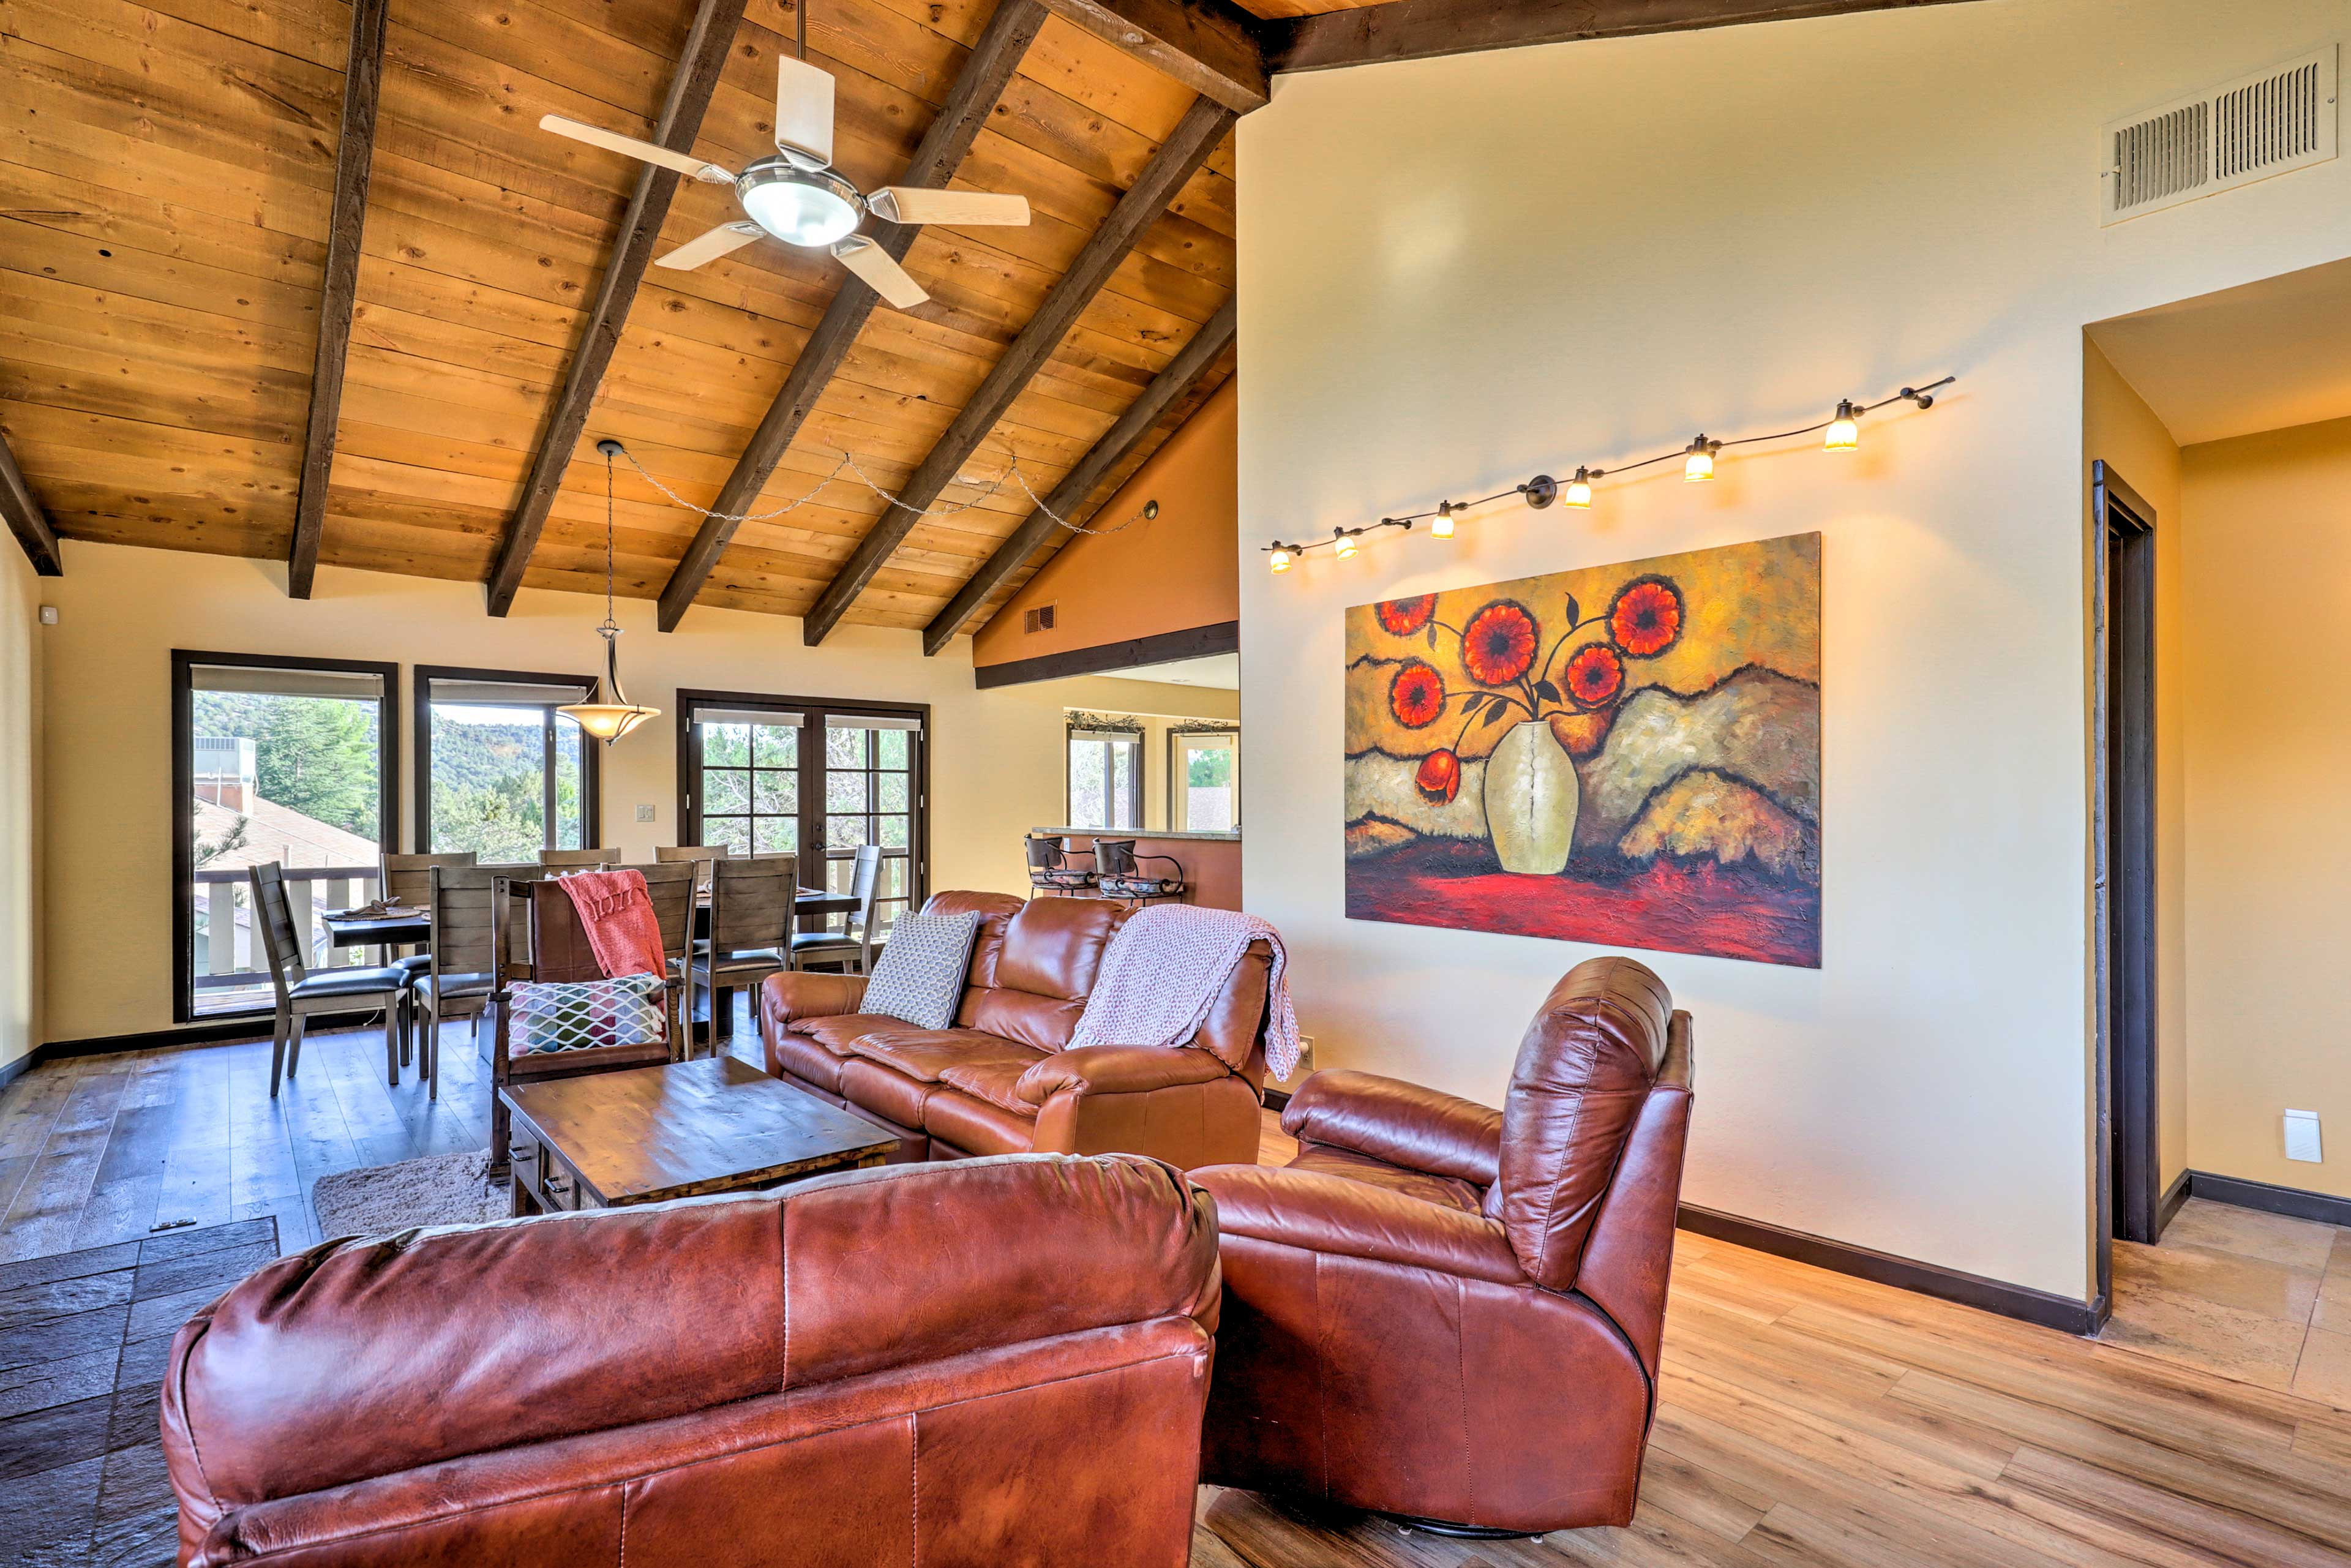 Vaulted ceilings and large windows make the living room feel very spacious.